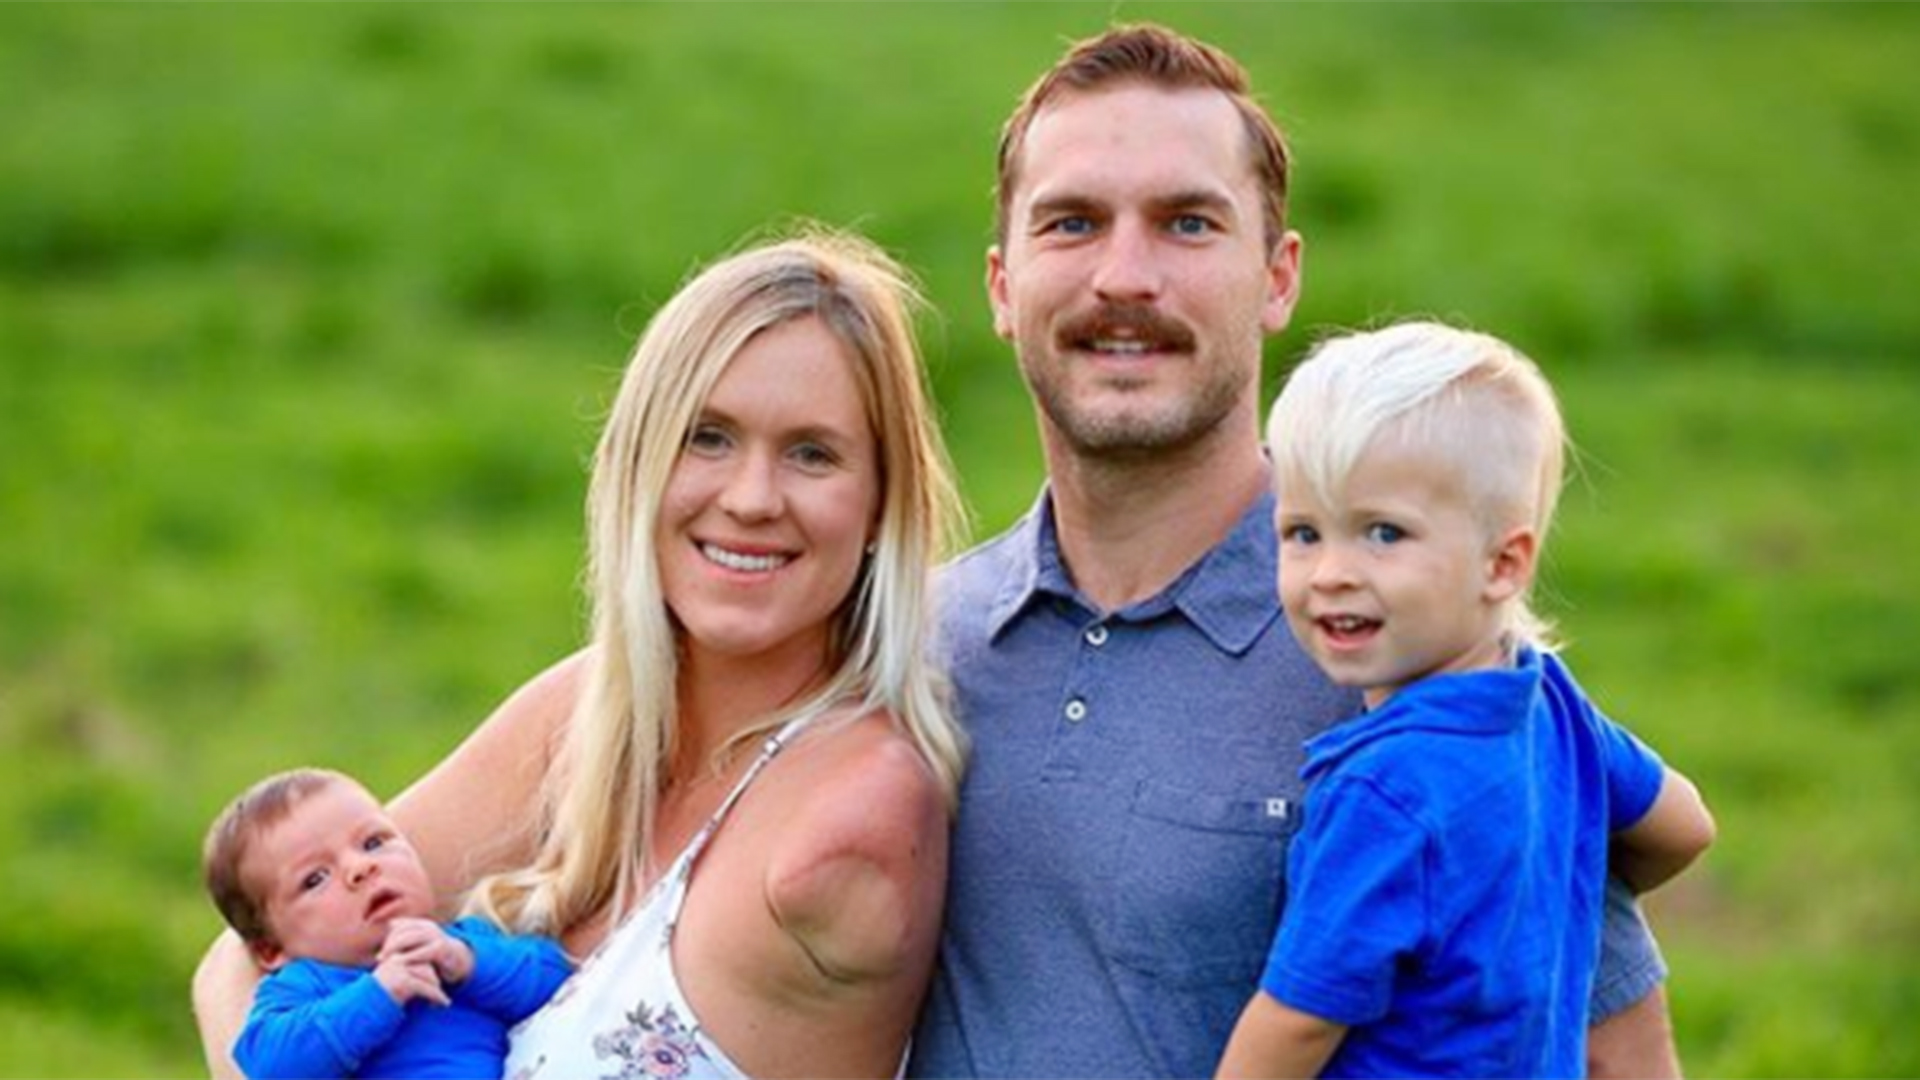 Surfer Bethany Hamilton and her family.